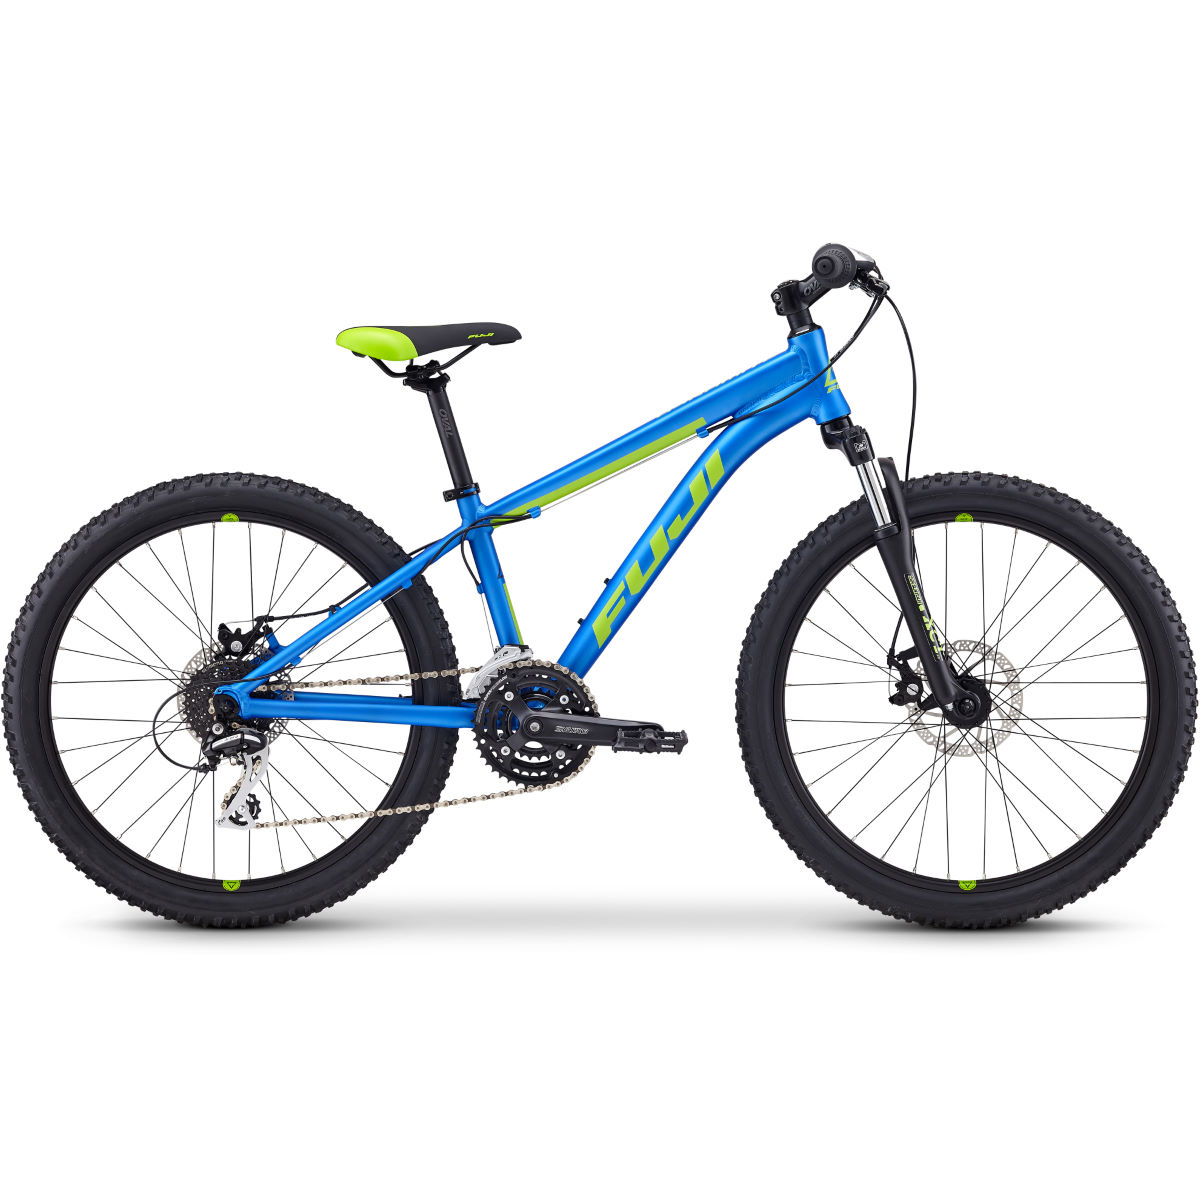 Fuji Dynamite PRO Disc INTL Kids 2019 Junior Bikes